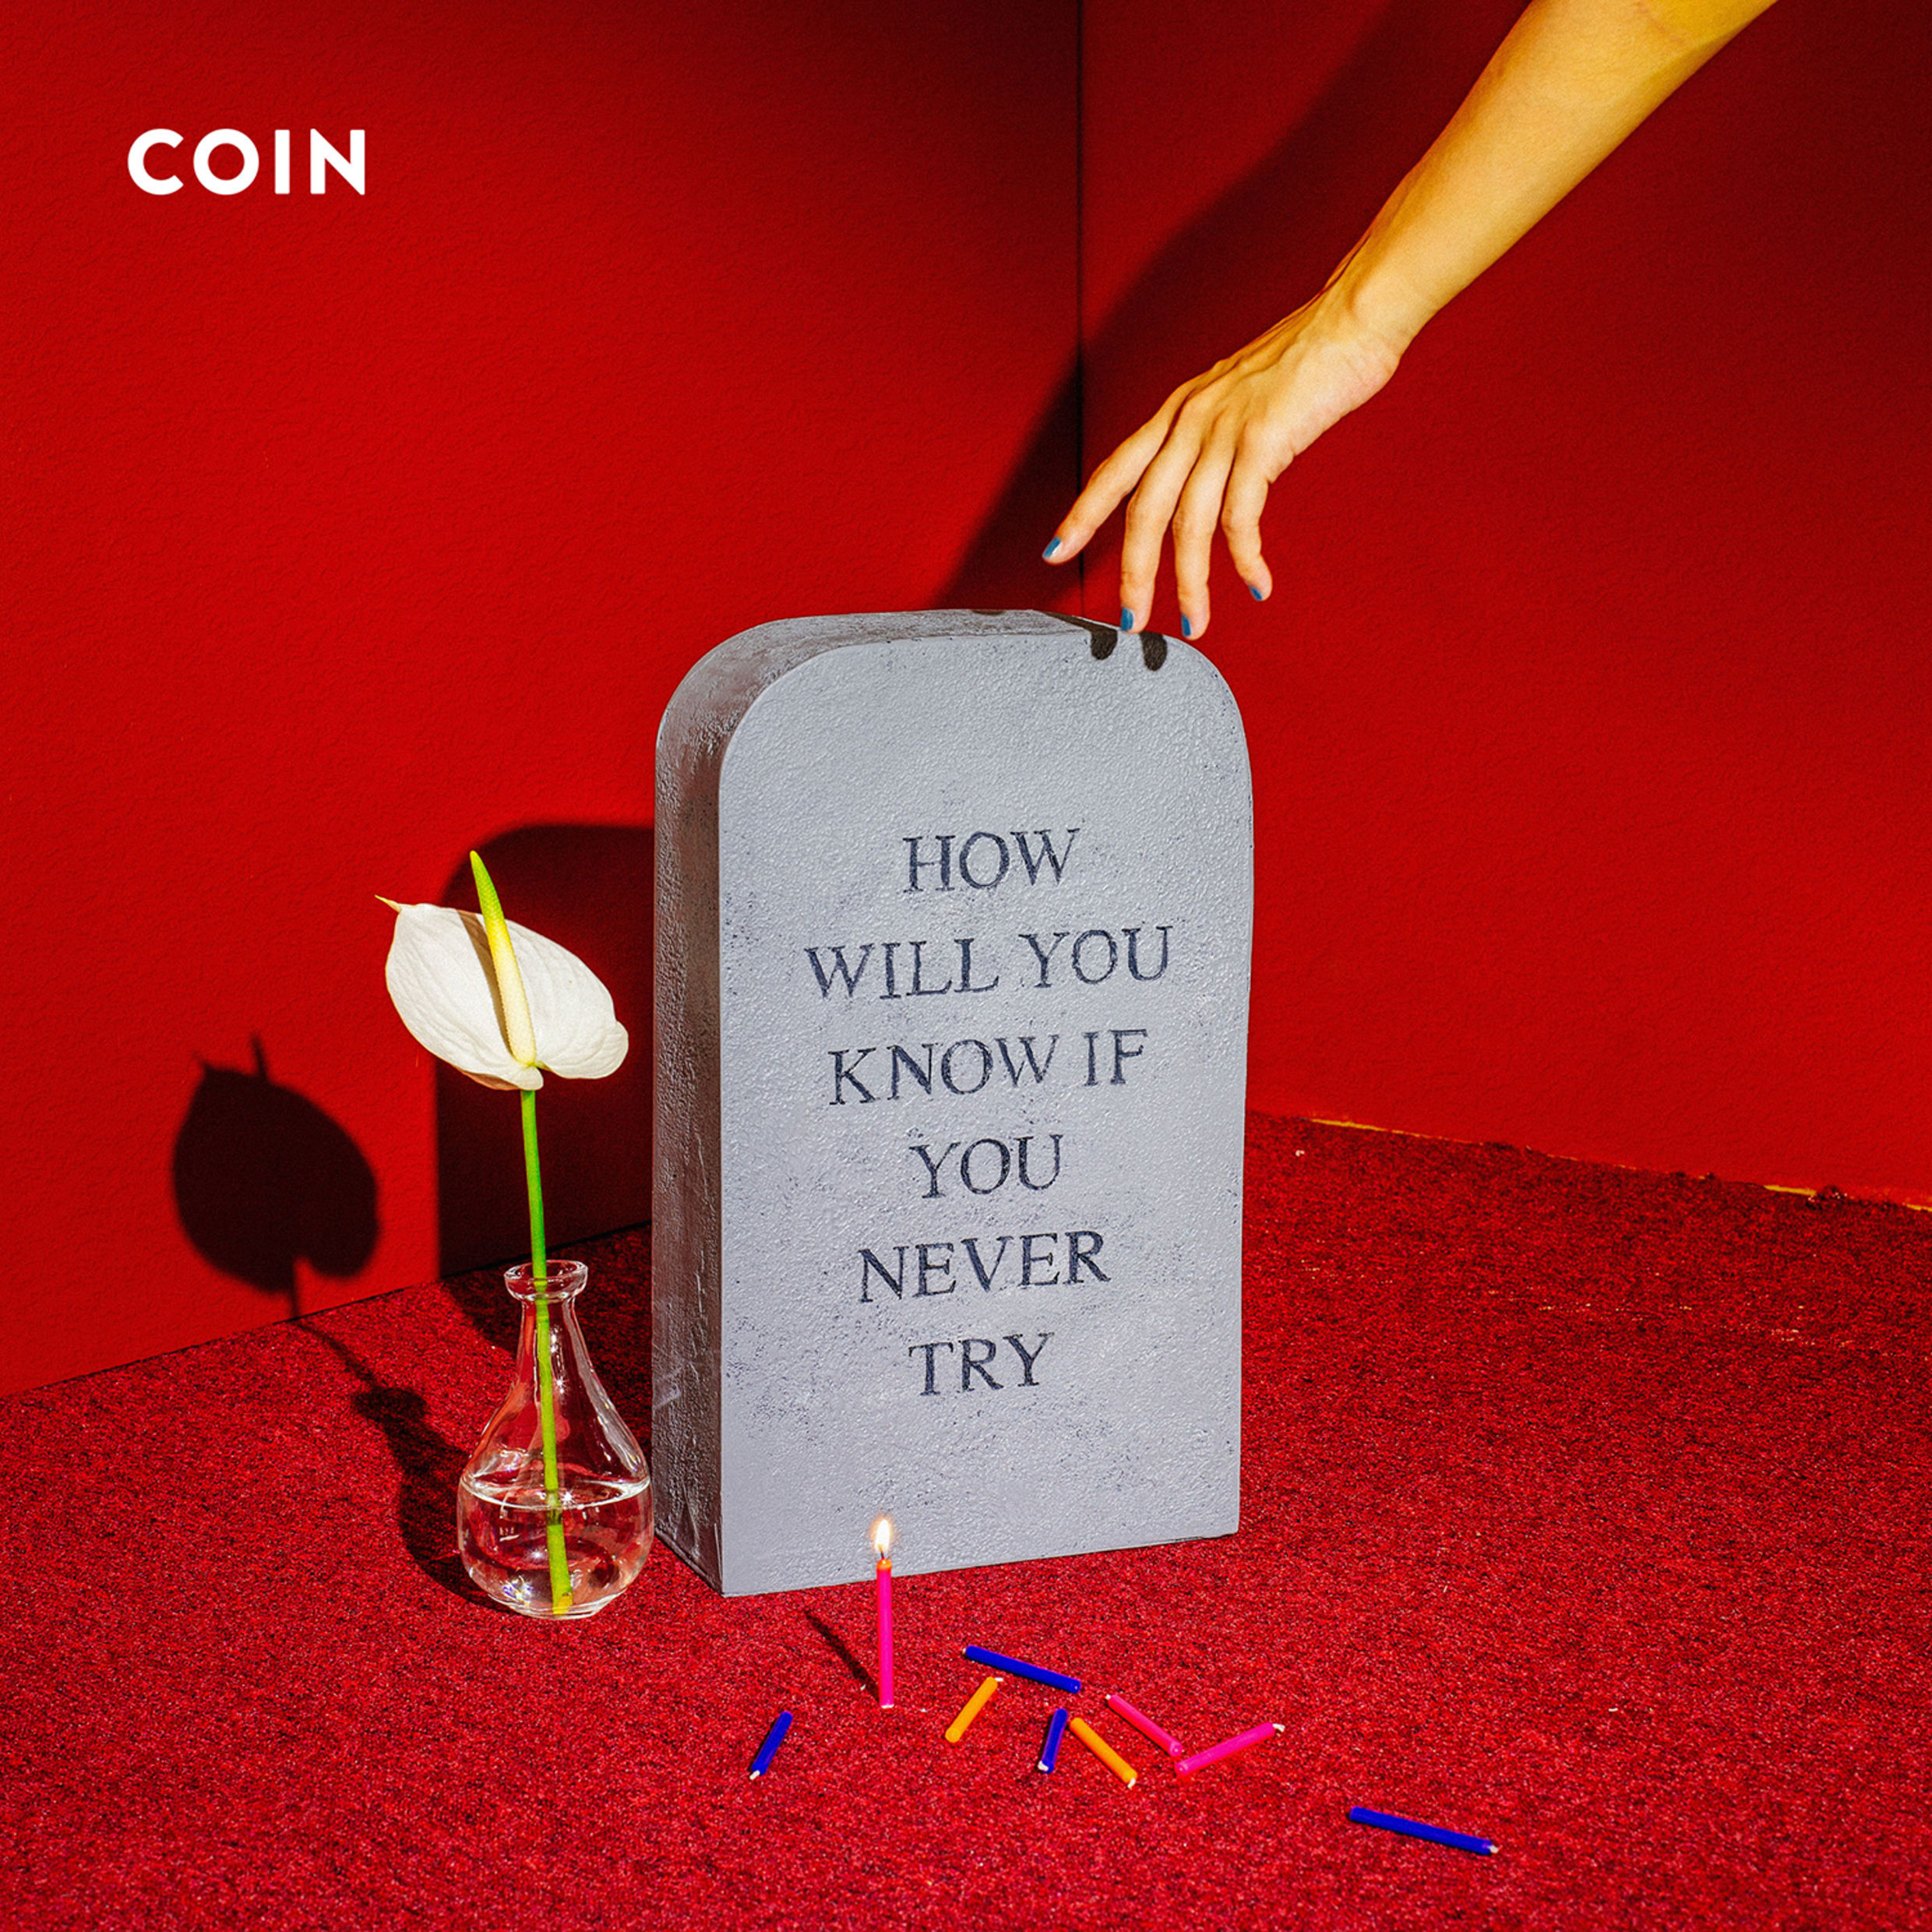 COIN-How-Will-You-Know-If-You-Never-Try-2017-2480x2480